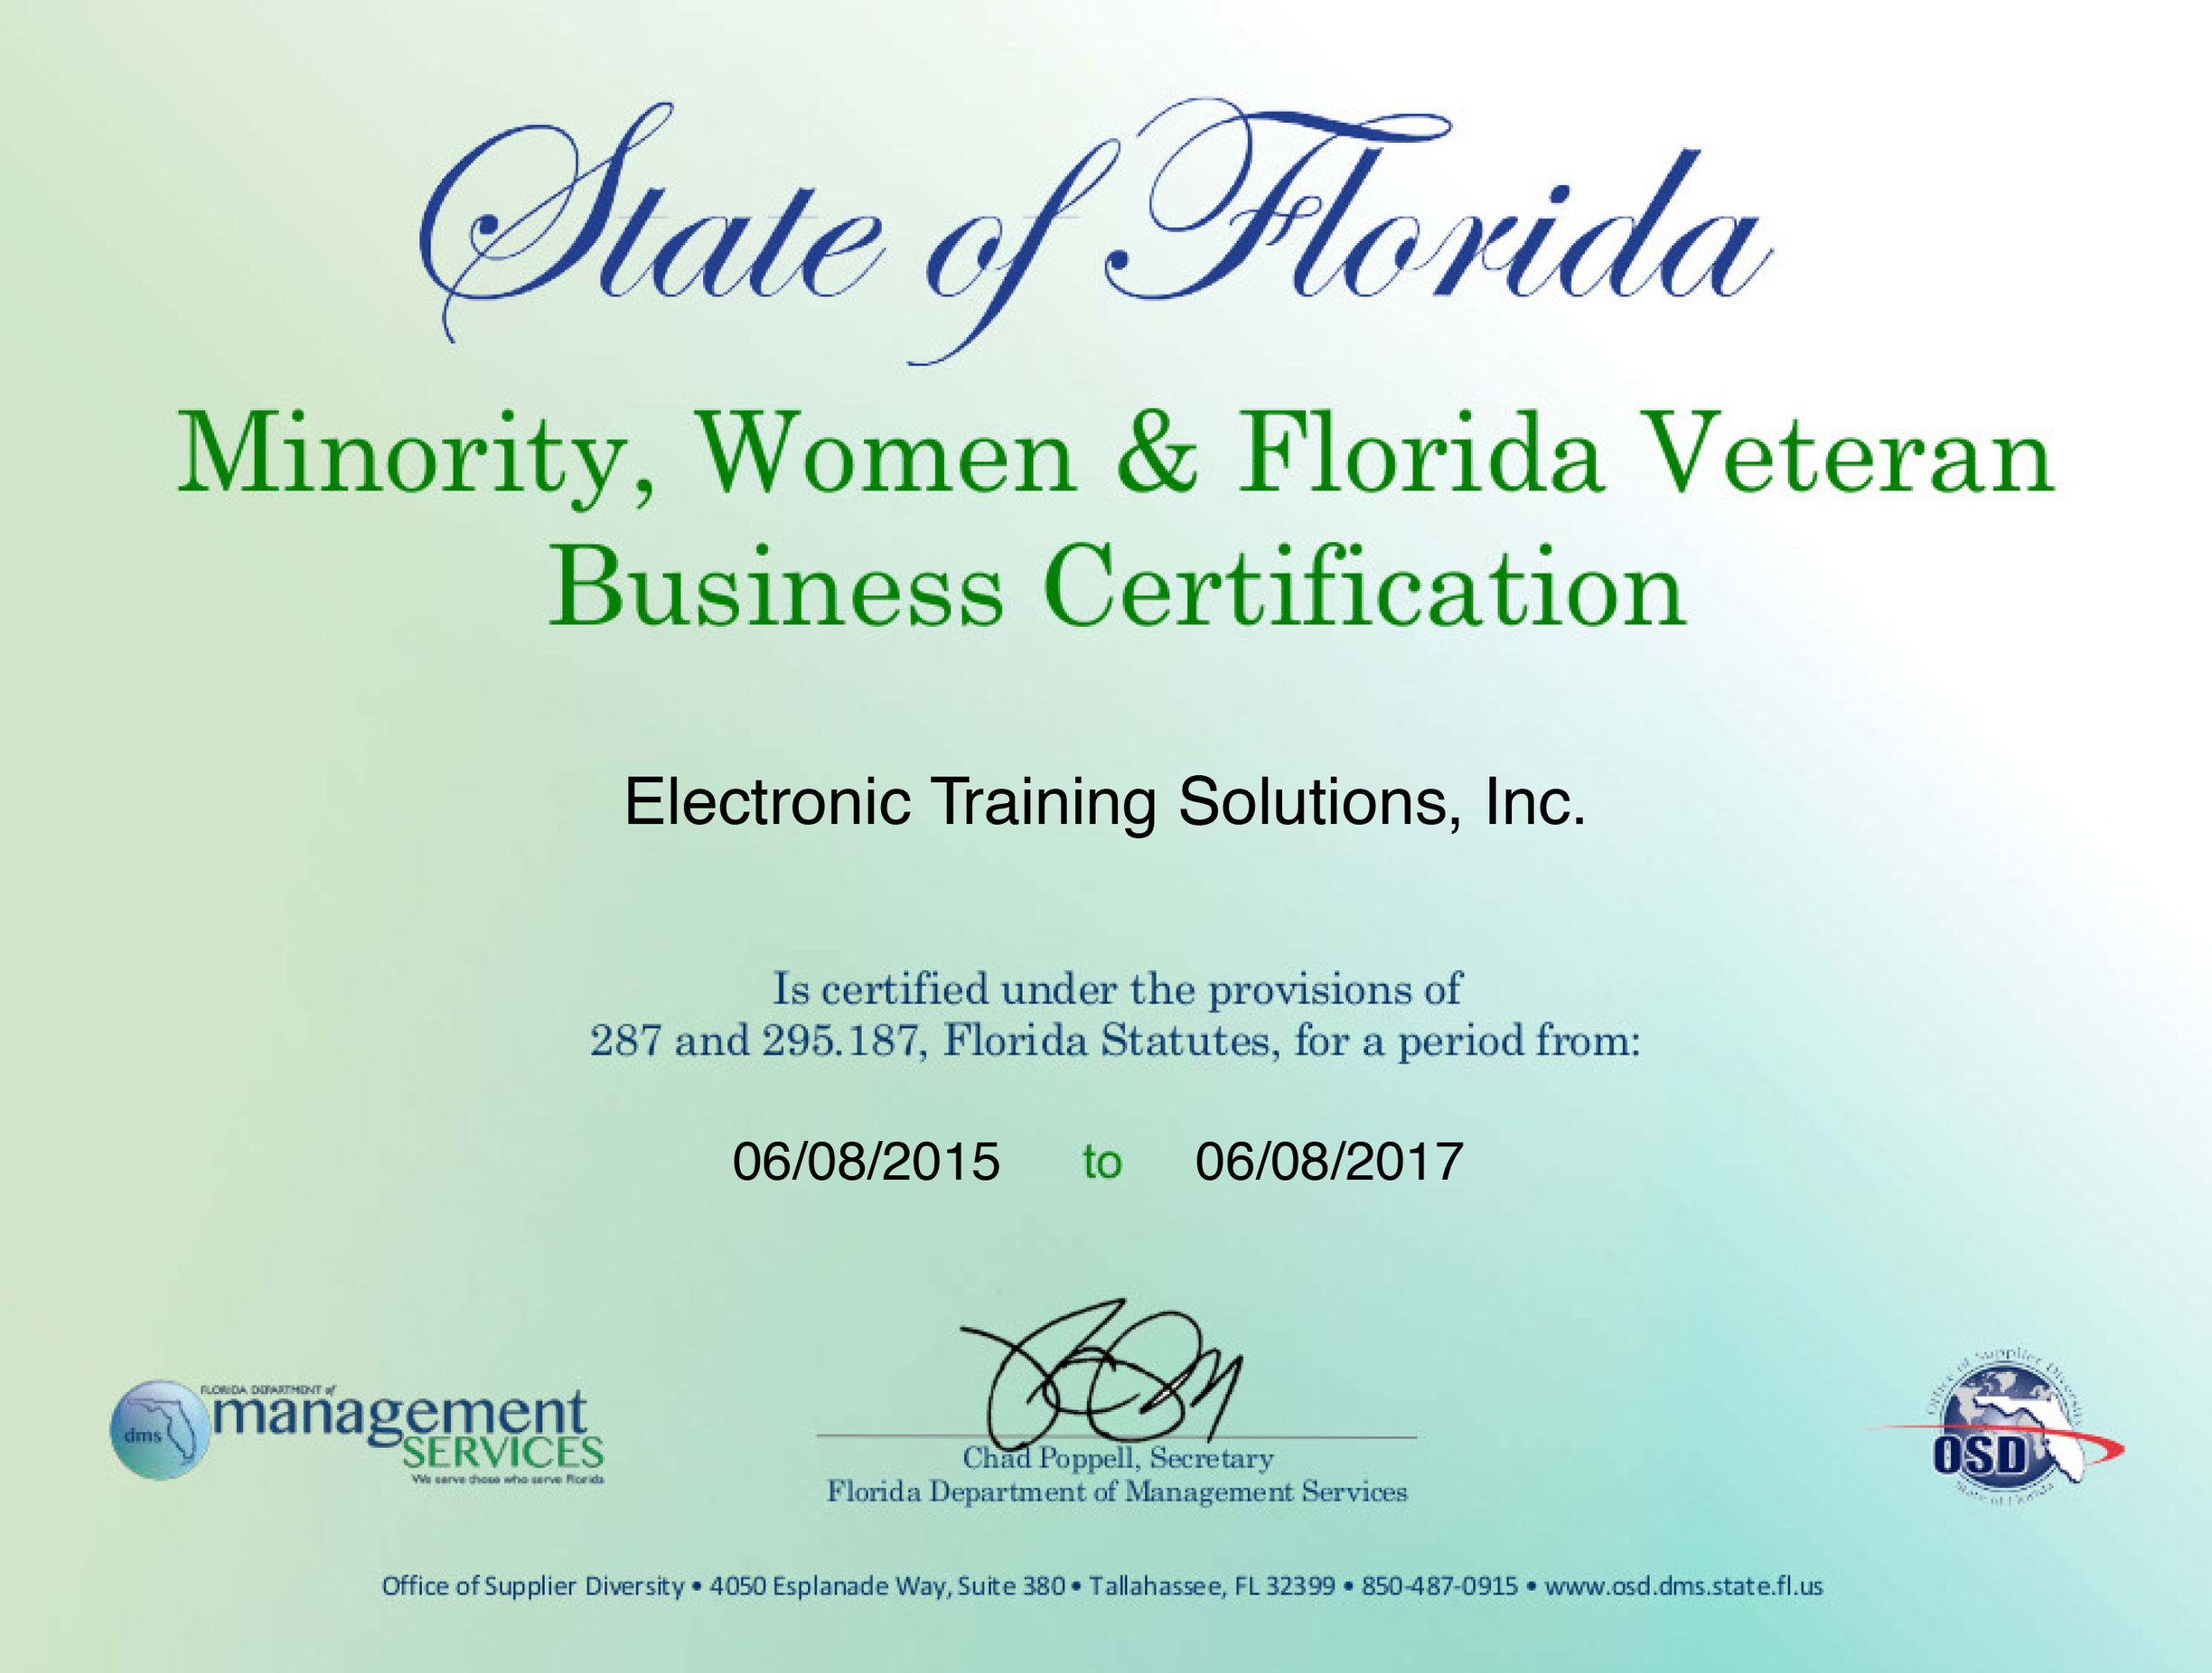 Fedlinks electronic training solutions inc cocoa fl 32923 ets osd mbe certificate xflitez Choice Image